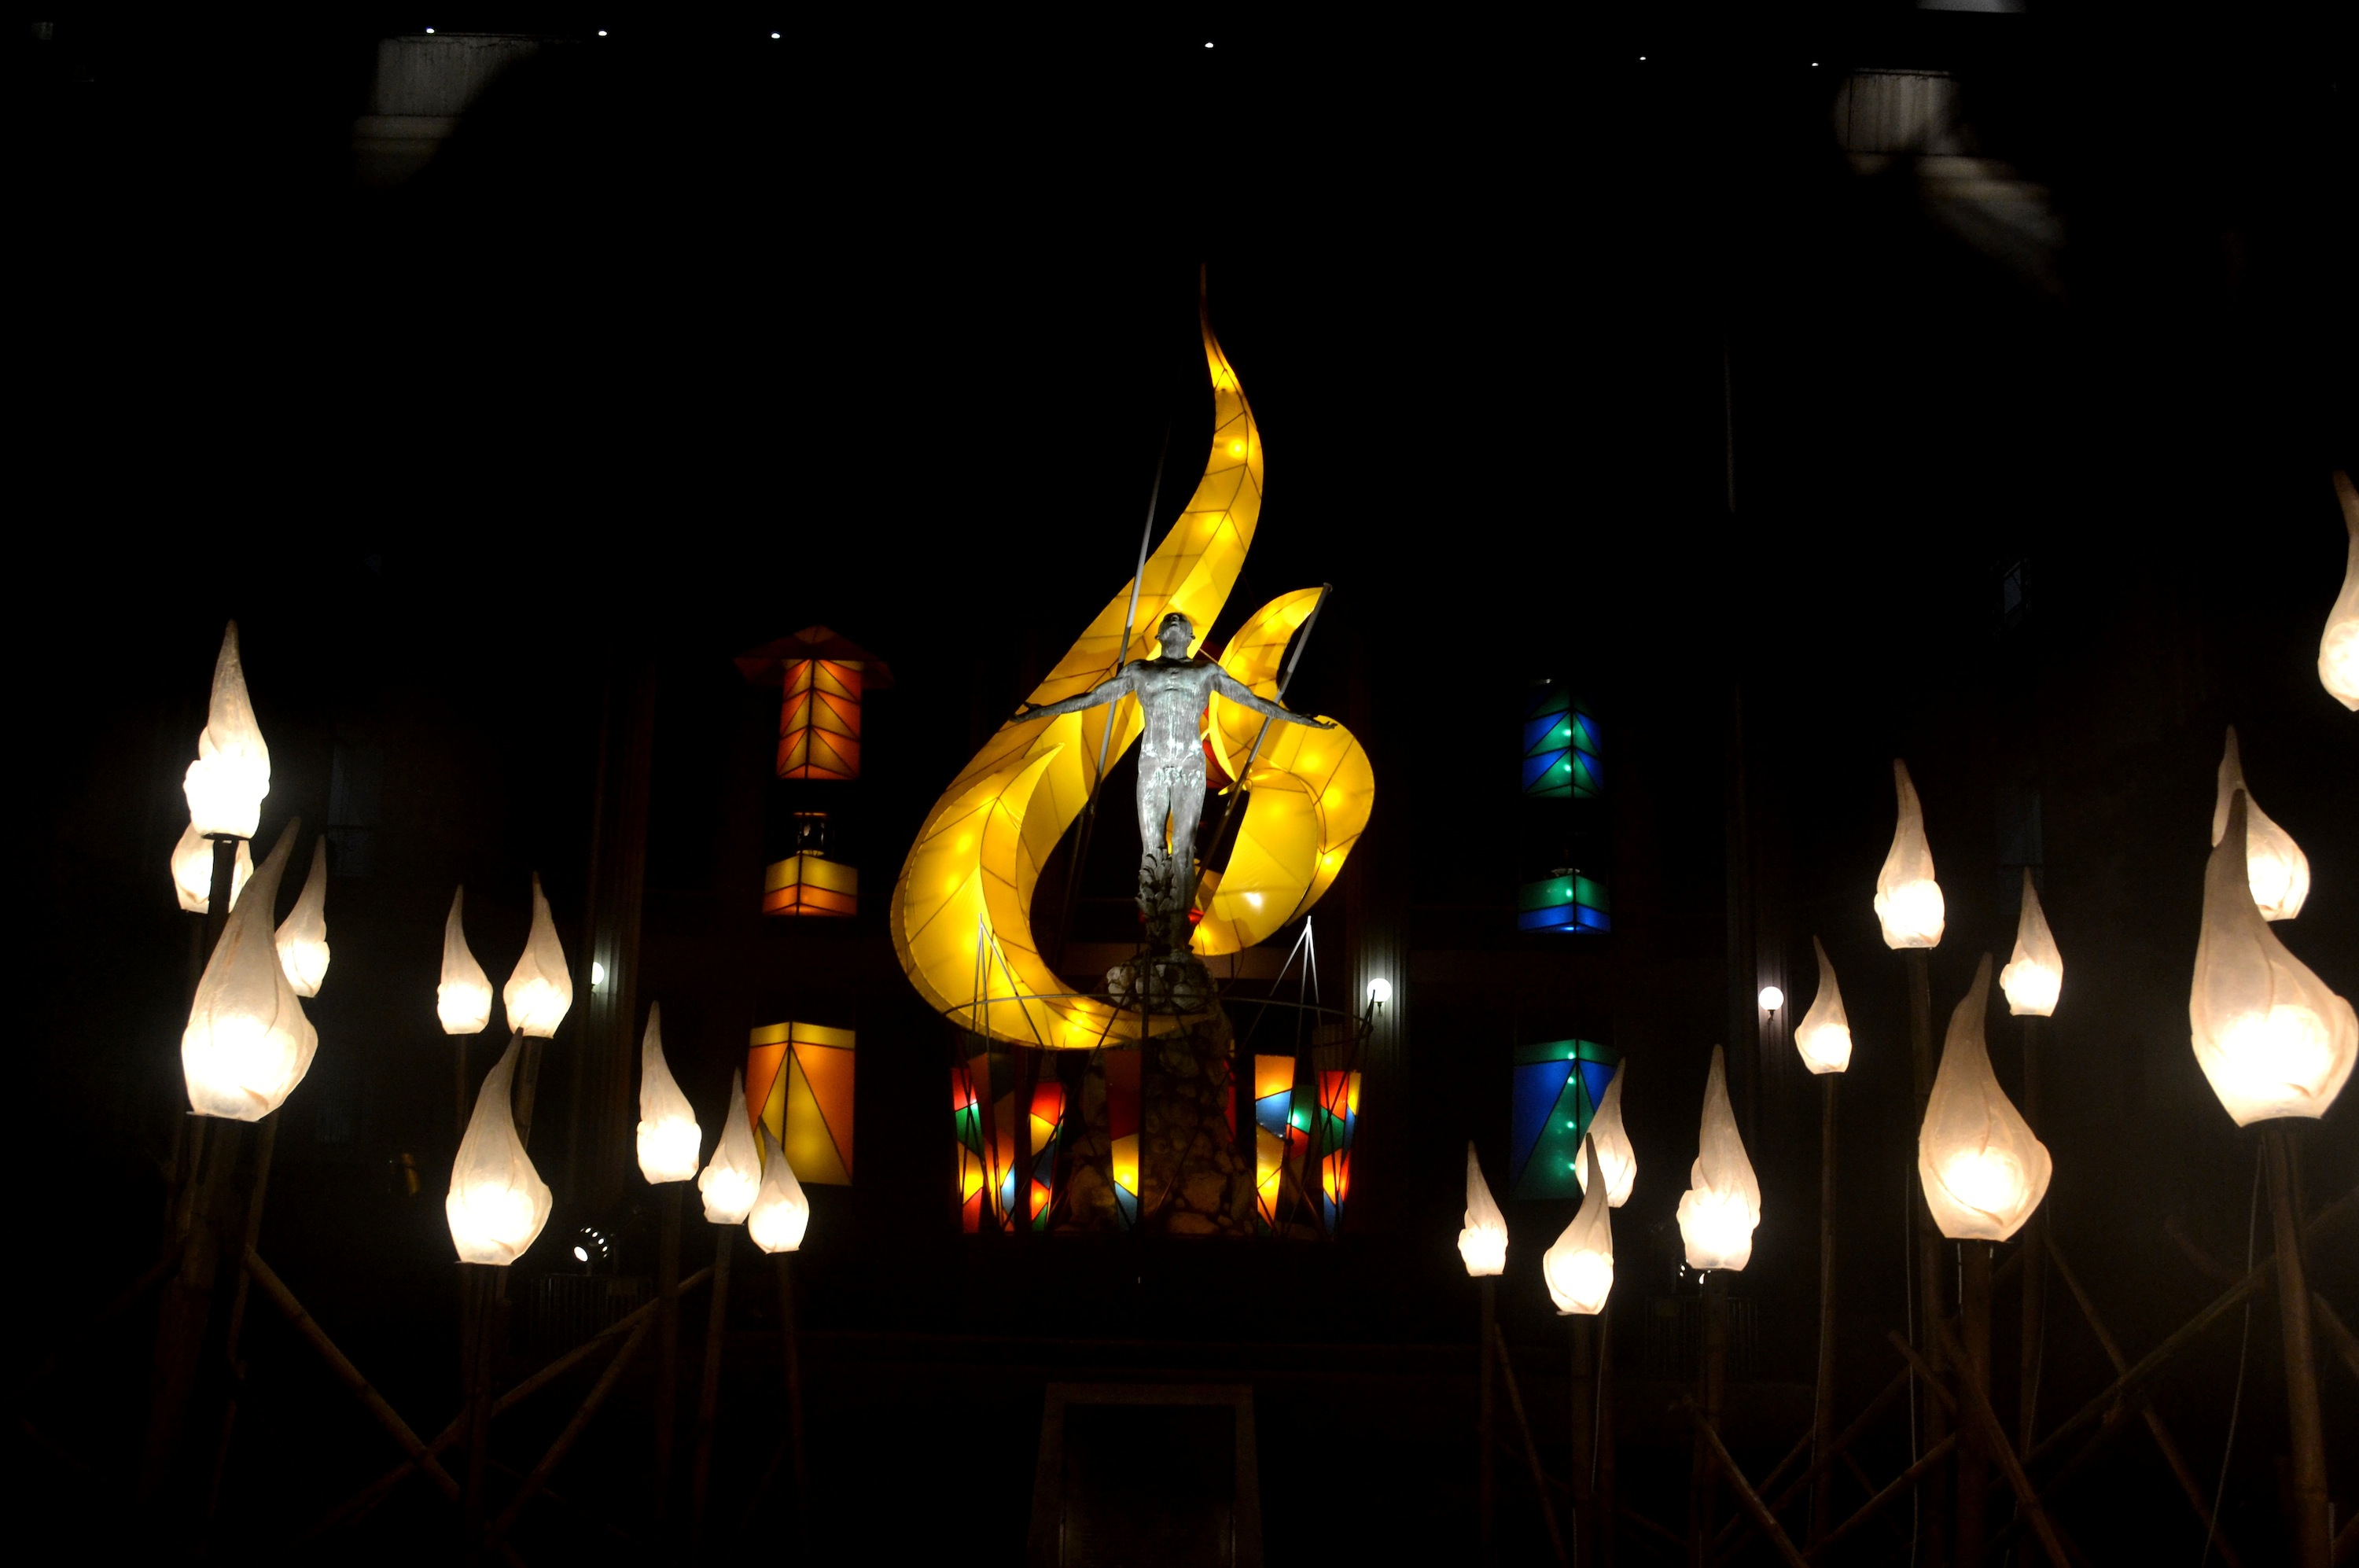 multi awarded painter and sculptor created the lighting effects of the oblation plaza in up awesome lighting